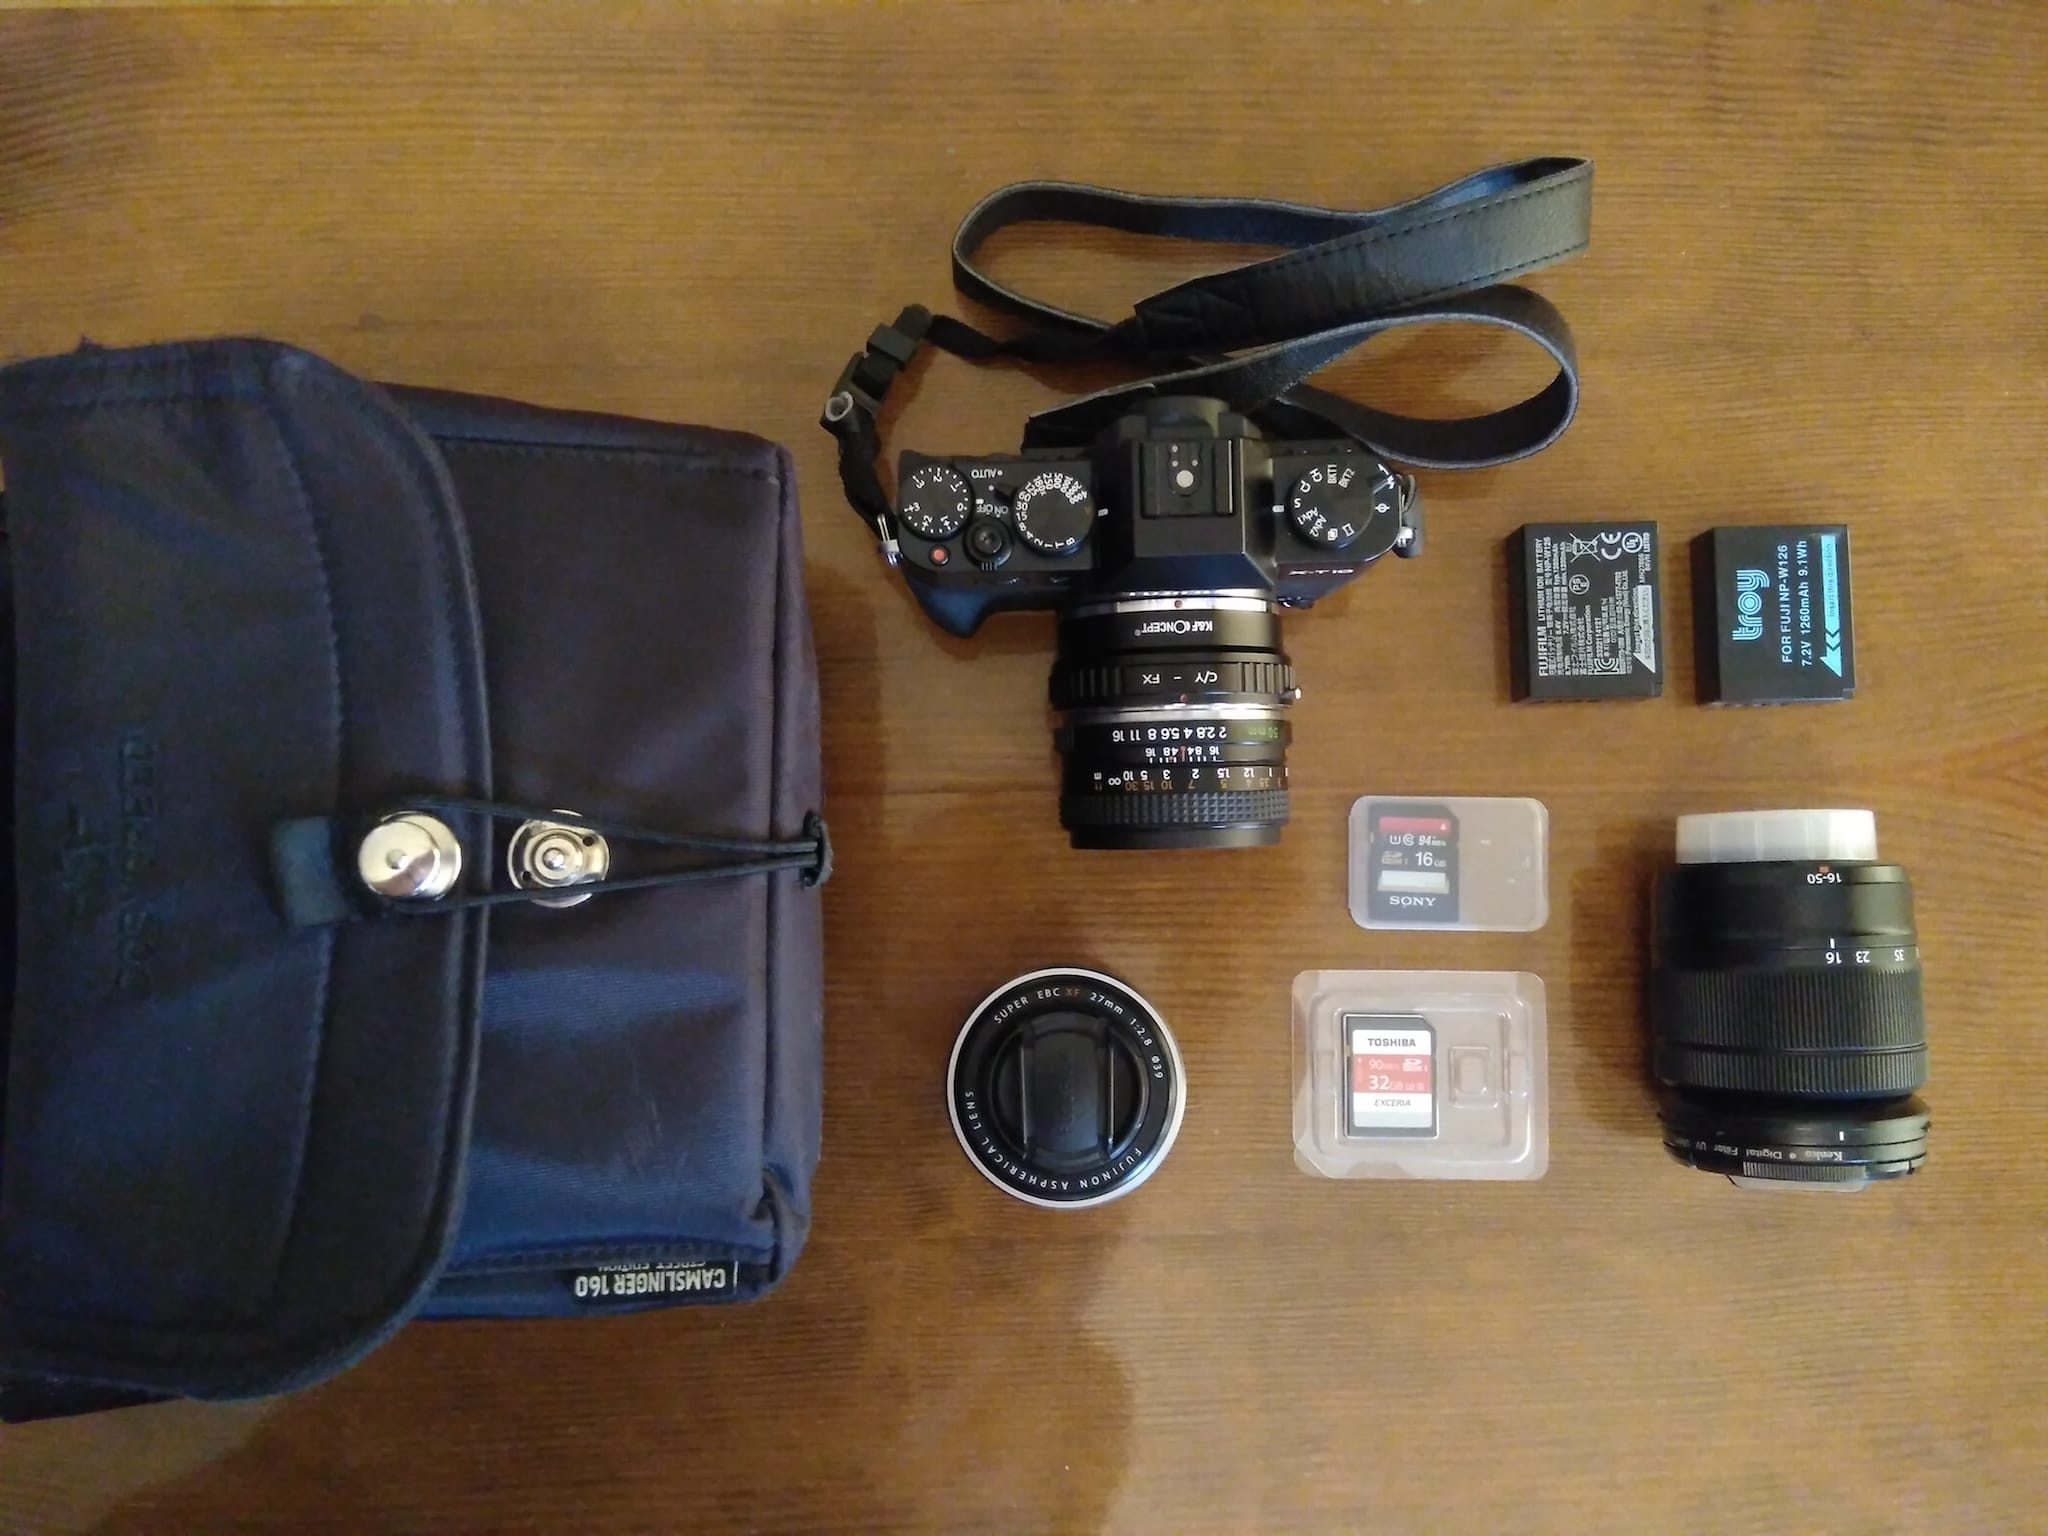 Yannis Fragakis' Camera Bag - Bag No. 154